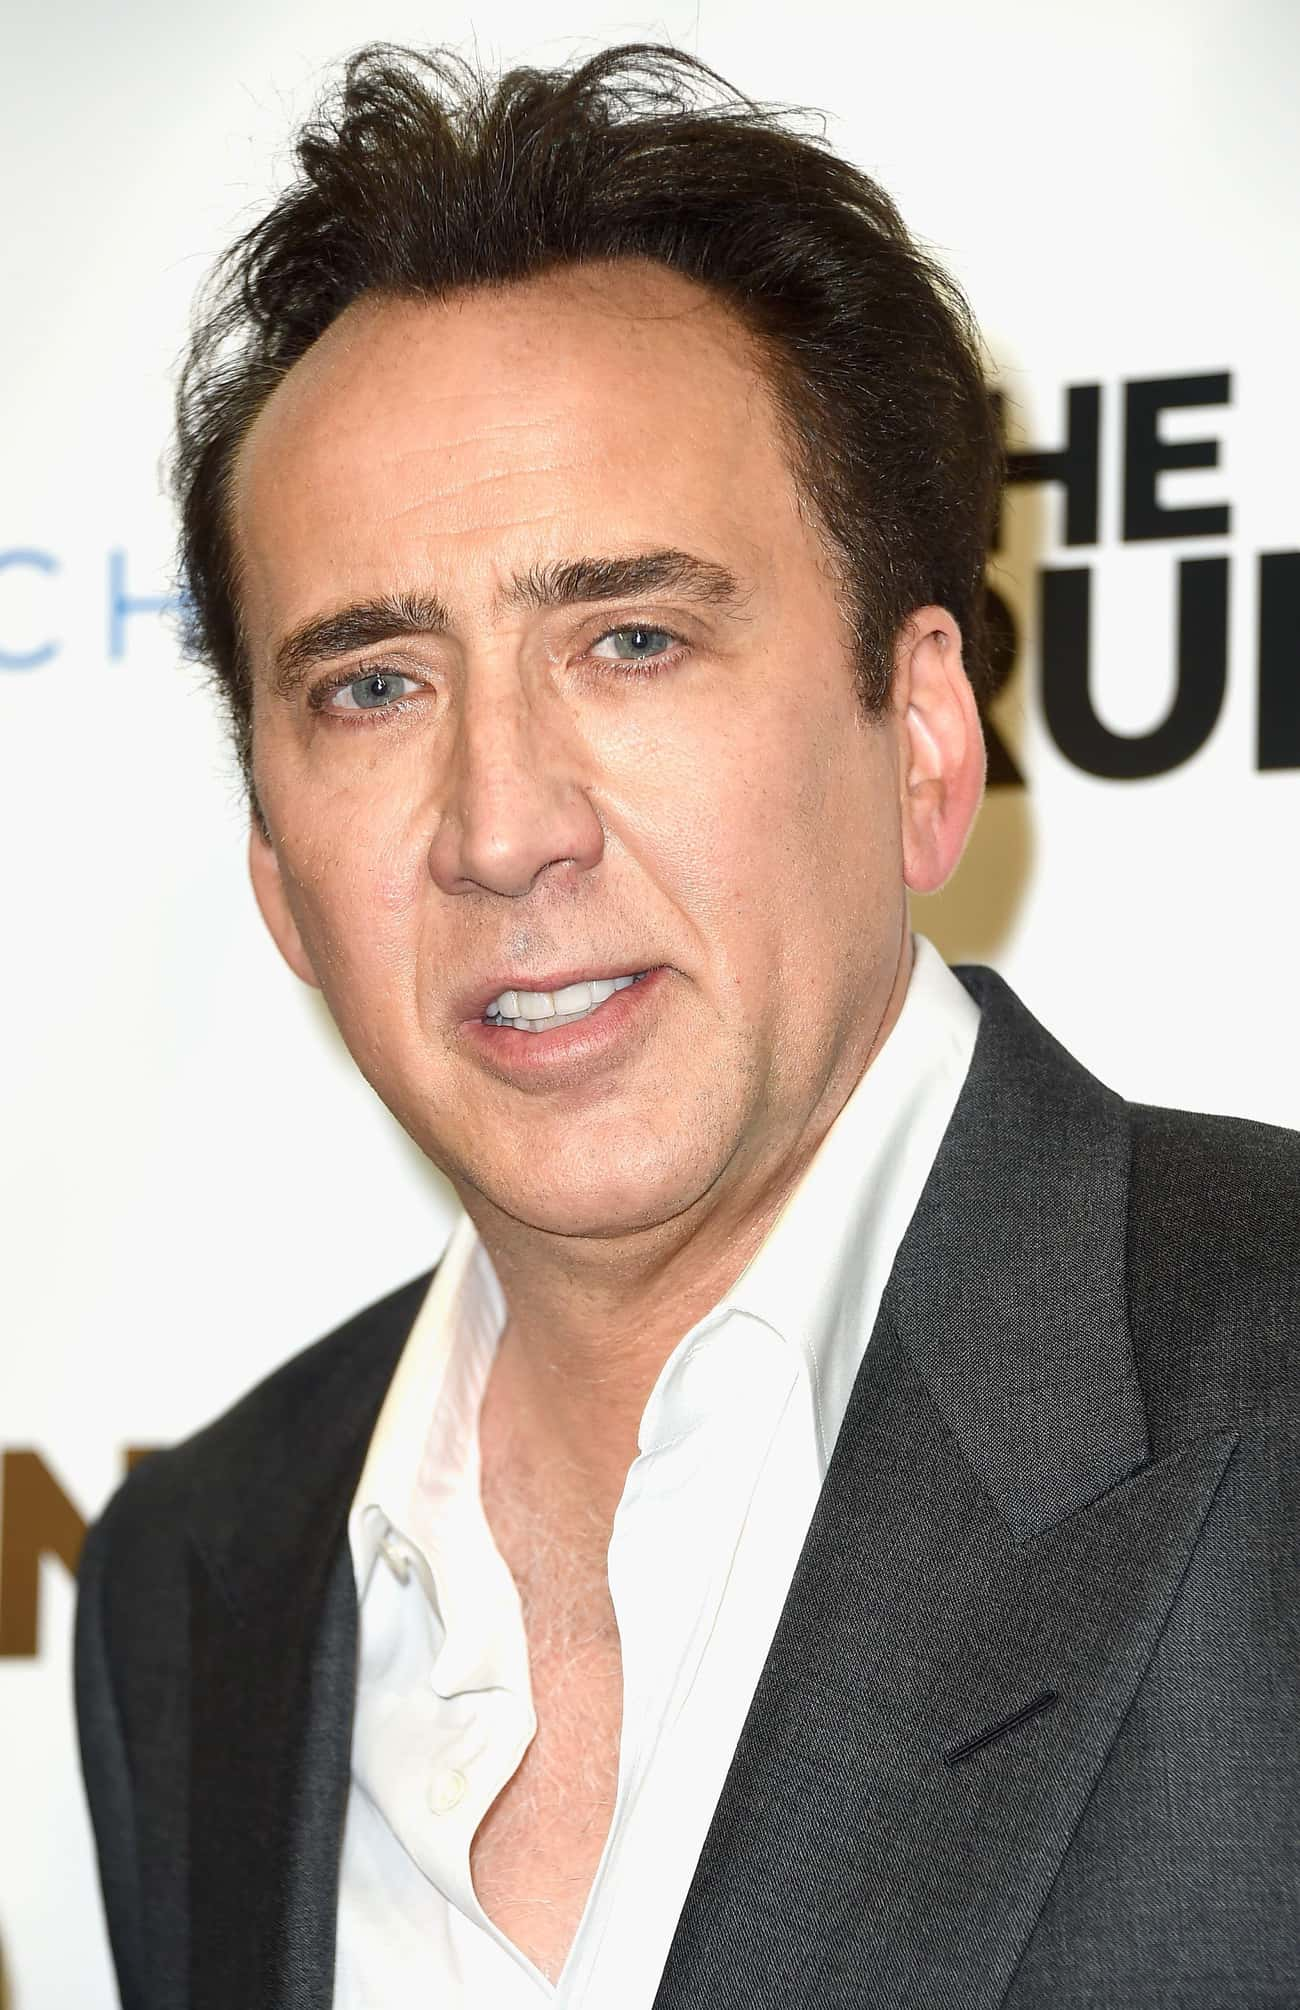 Nicolas Cage Possess(ed) One of the Most Important Comic Books Ever